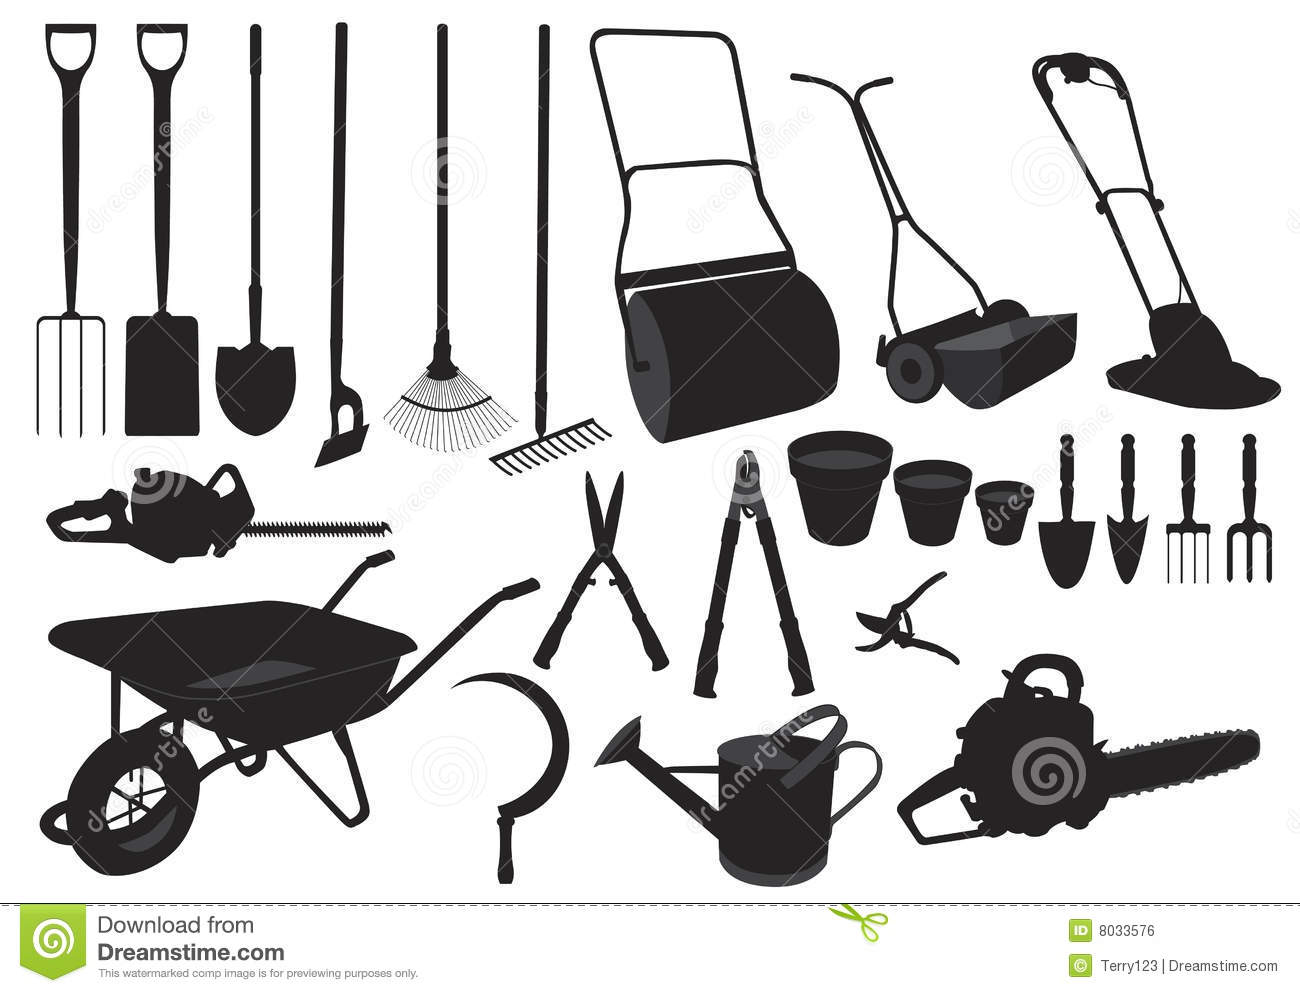 Yard Tools Clip Art : Silhouette garden tools stock vector illustration of lawn